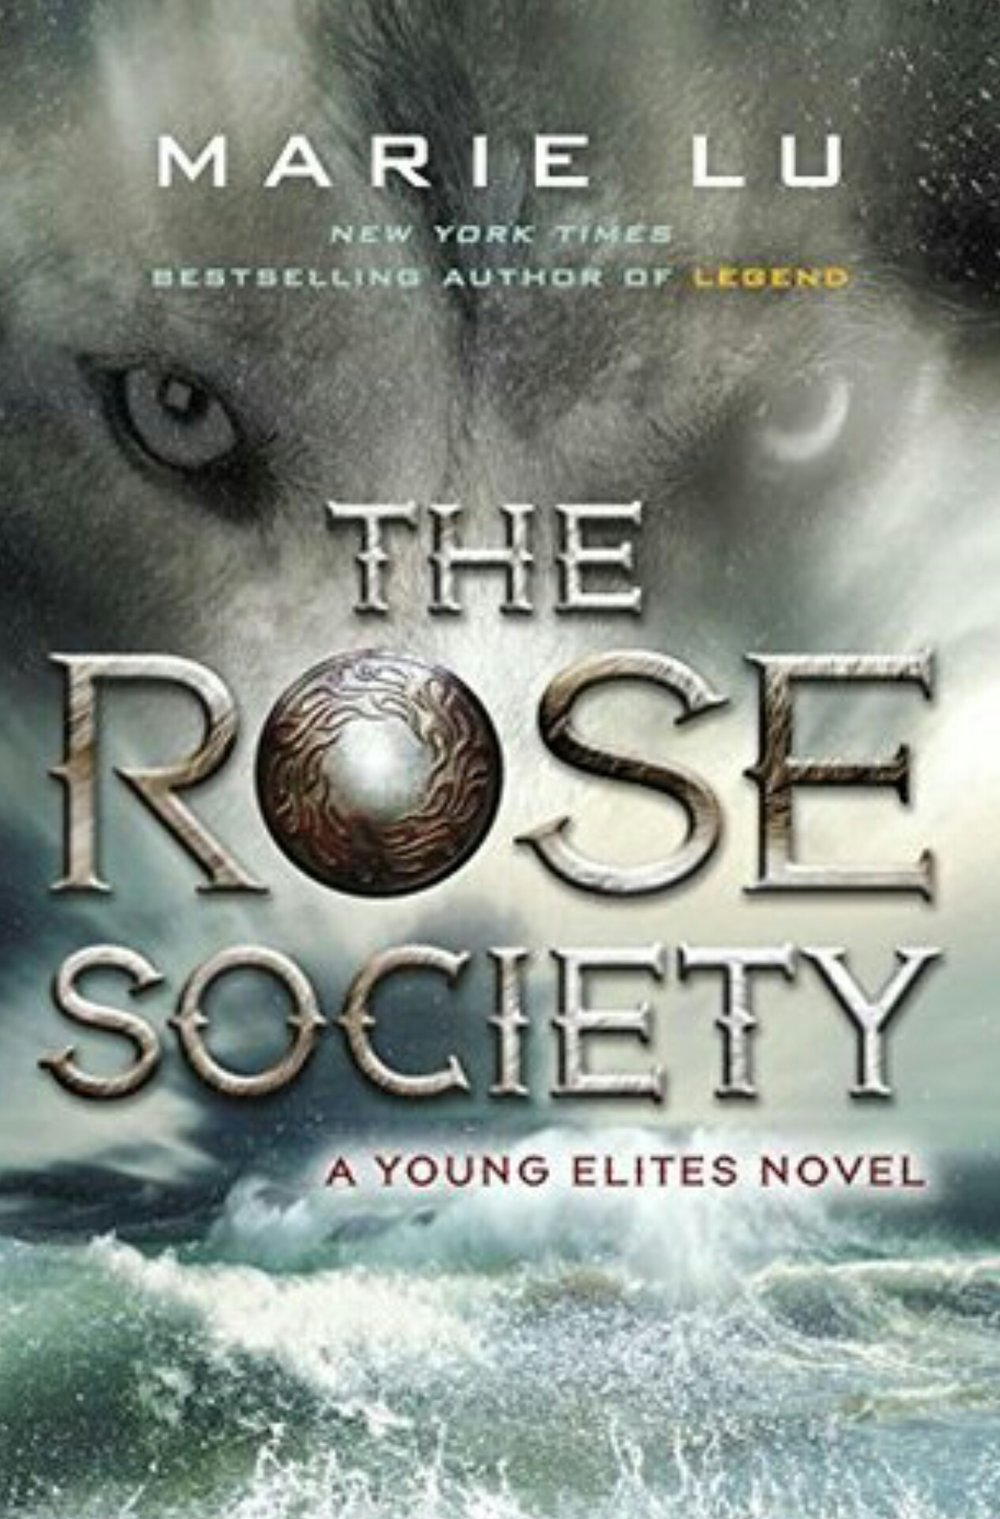 The Young Elites by Marie Lu PUBLISHED October 13, 2015 G.P. Putnam's Sons Books for Young Readers GENRE: Young Adult, High Fantasy PAGES: 398 FORMAT: PAPERBACK SOURCE: PURCHASED PACING: {5/5}